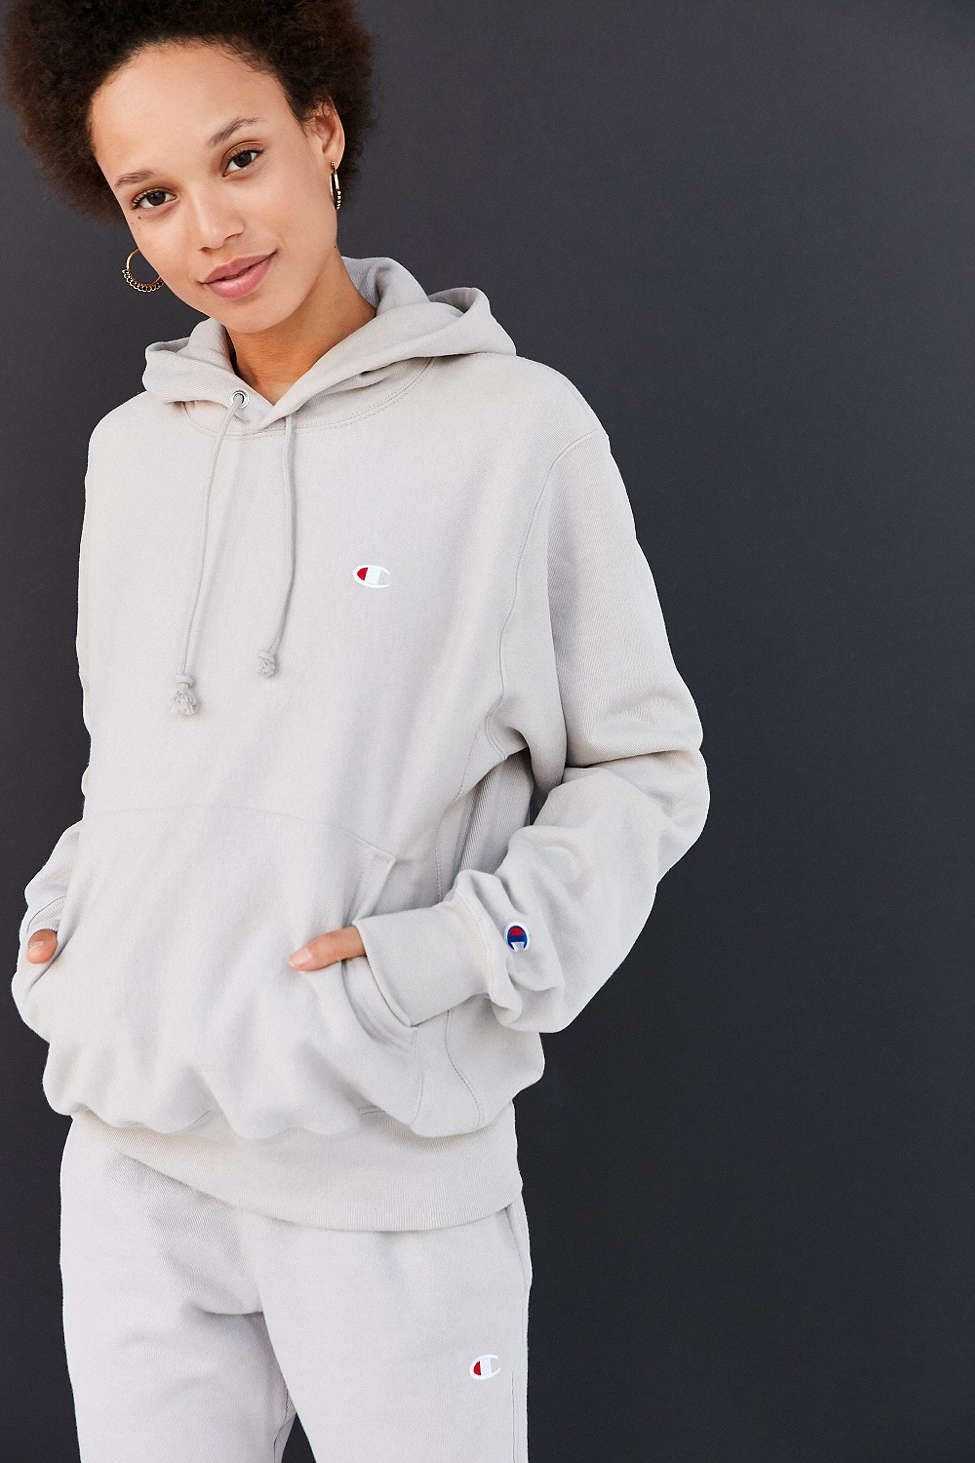 fbdc3bf1a937 Champion + UO Reverse Weave Hoodie Sweatshirt//Might want a crewneck  sweatshirt in this color instead.